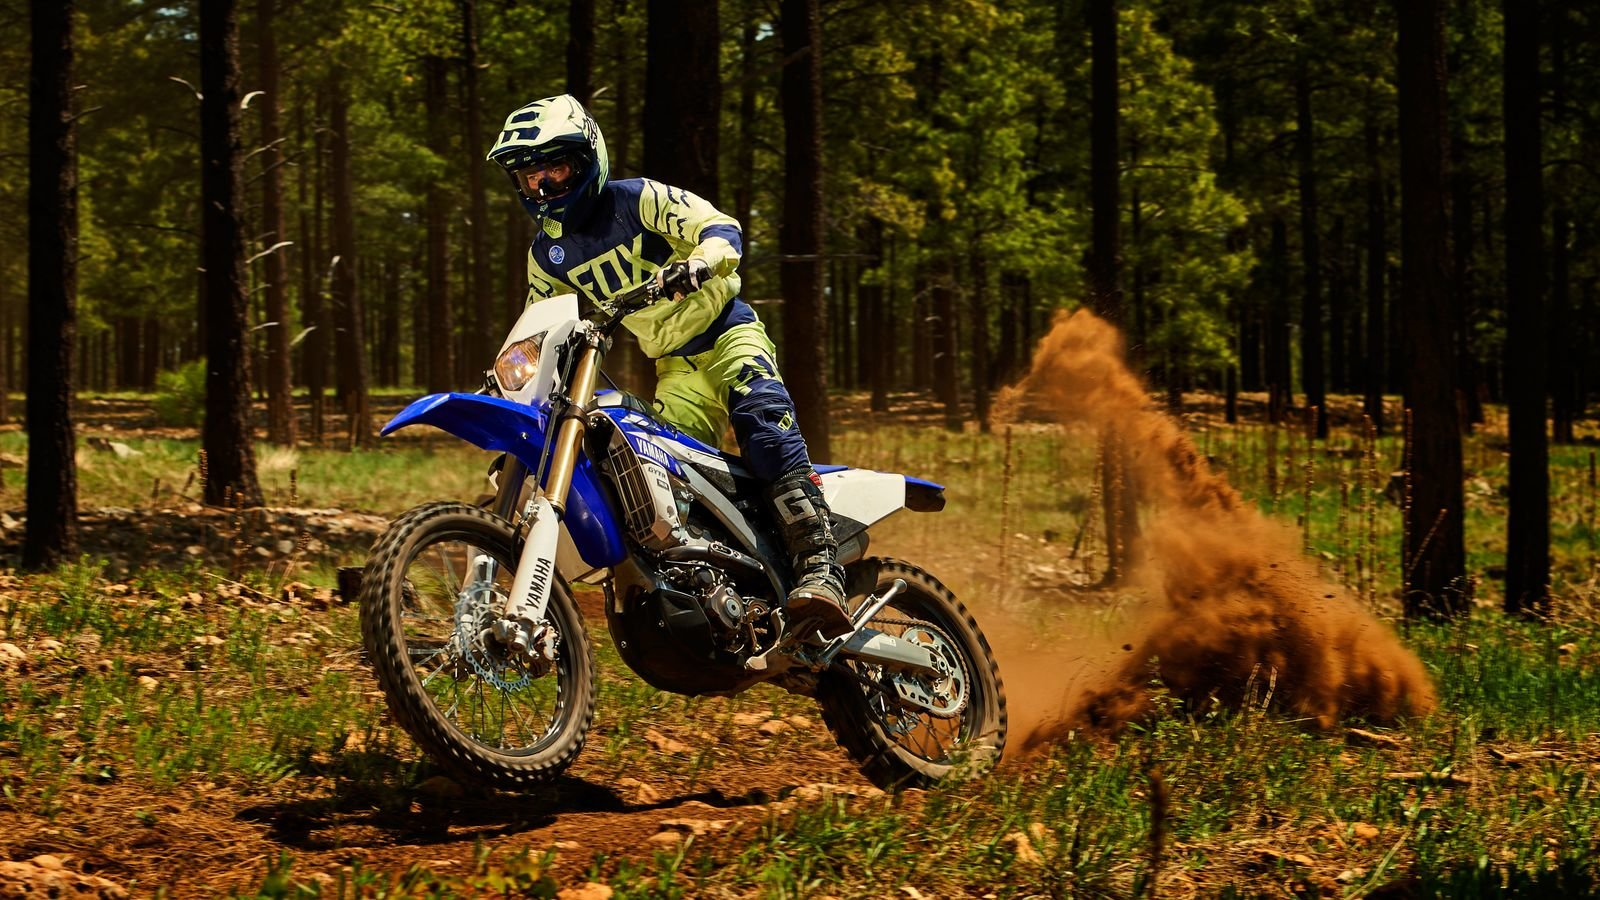 2015 2017 yamaha wr250f review top speed for Yamaha wr 250 2017